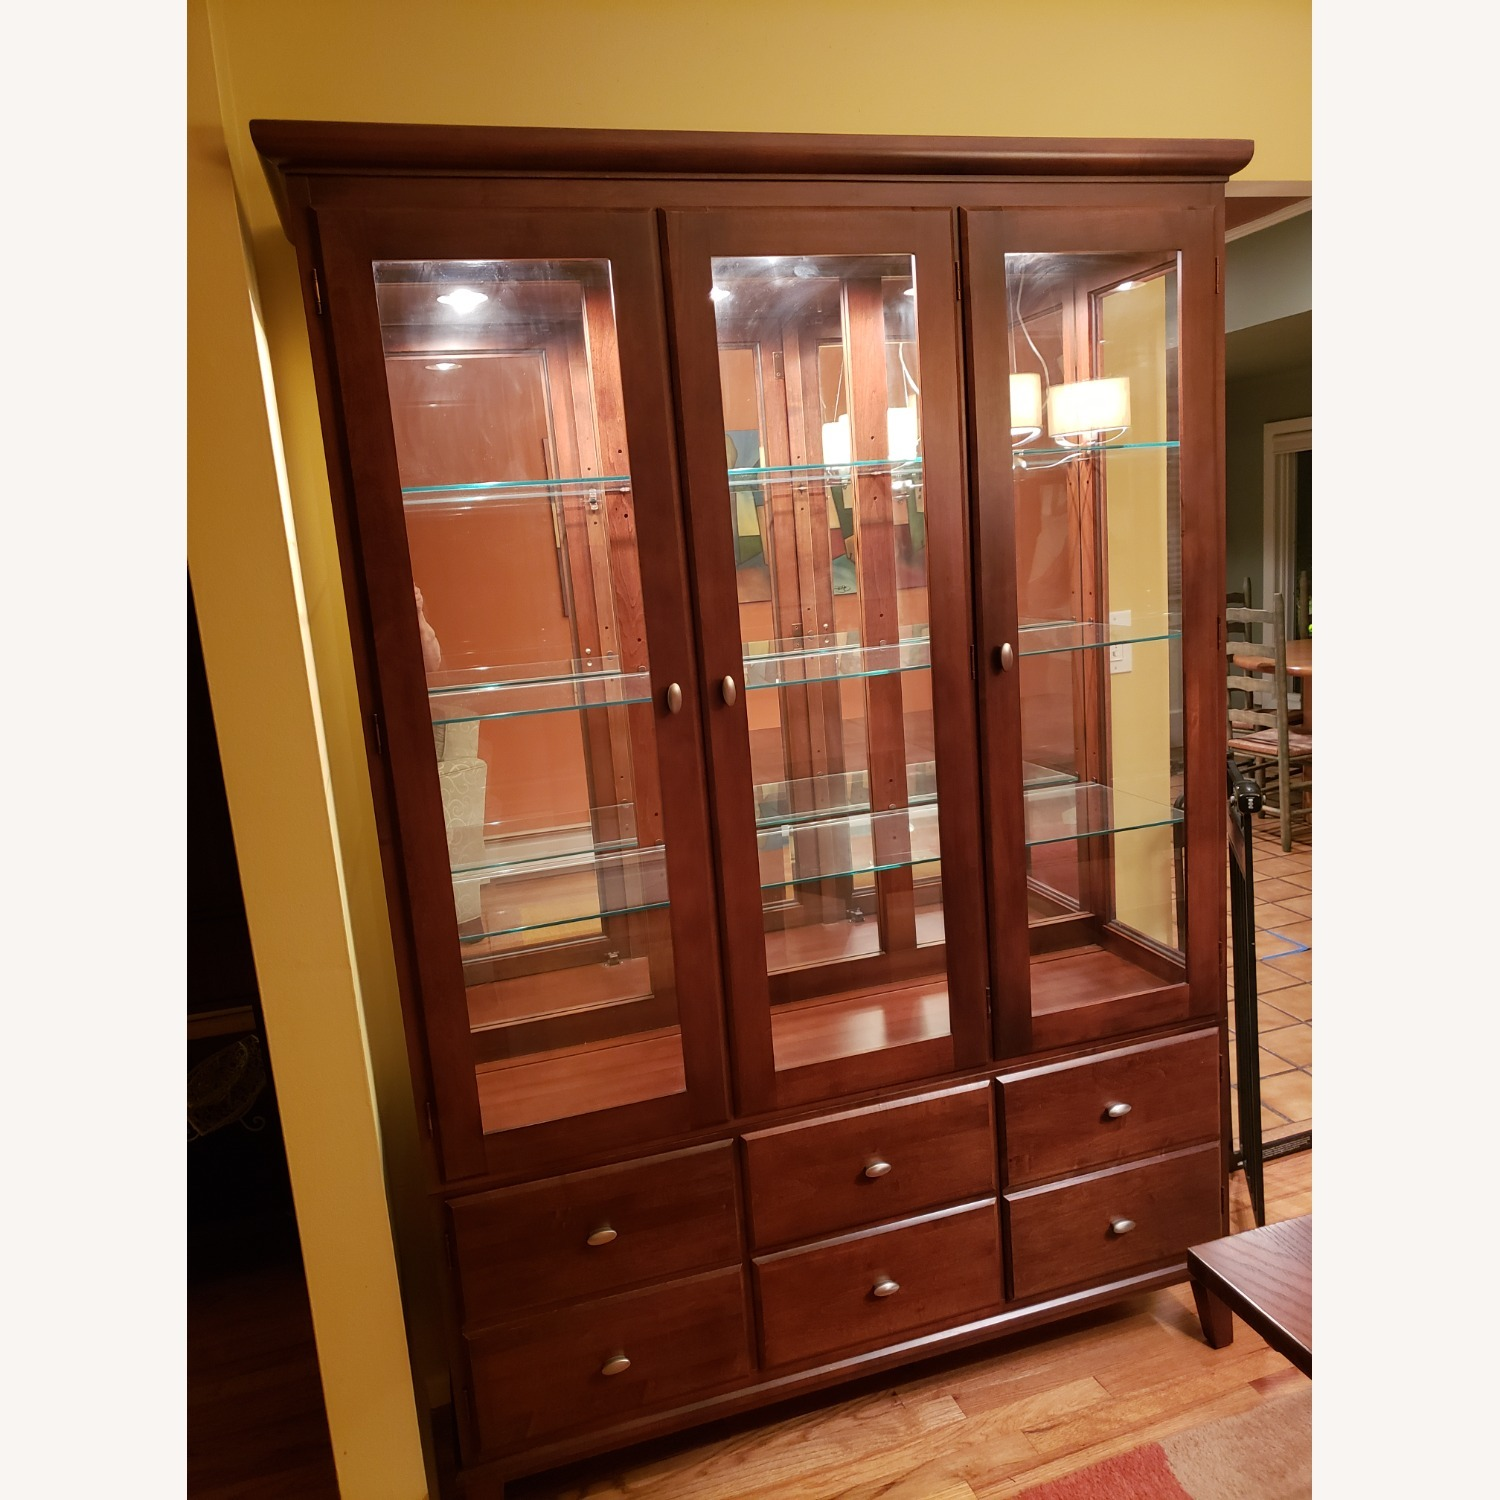 Ethan Allen Horizon China Cabinet with Lights - image-0